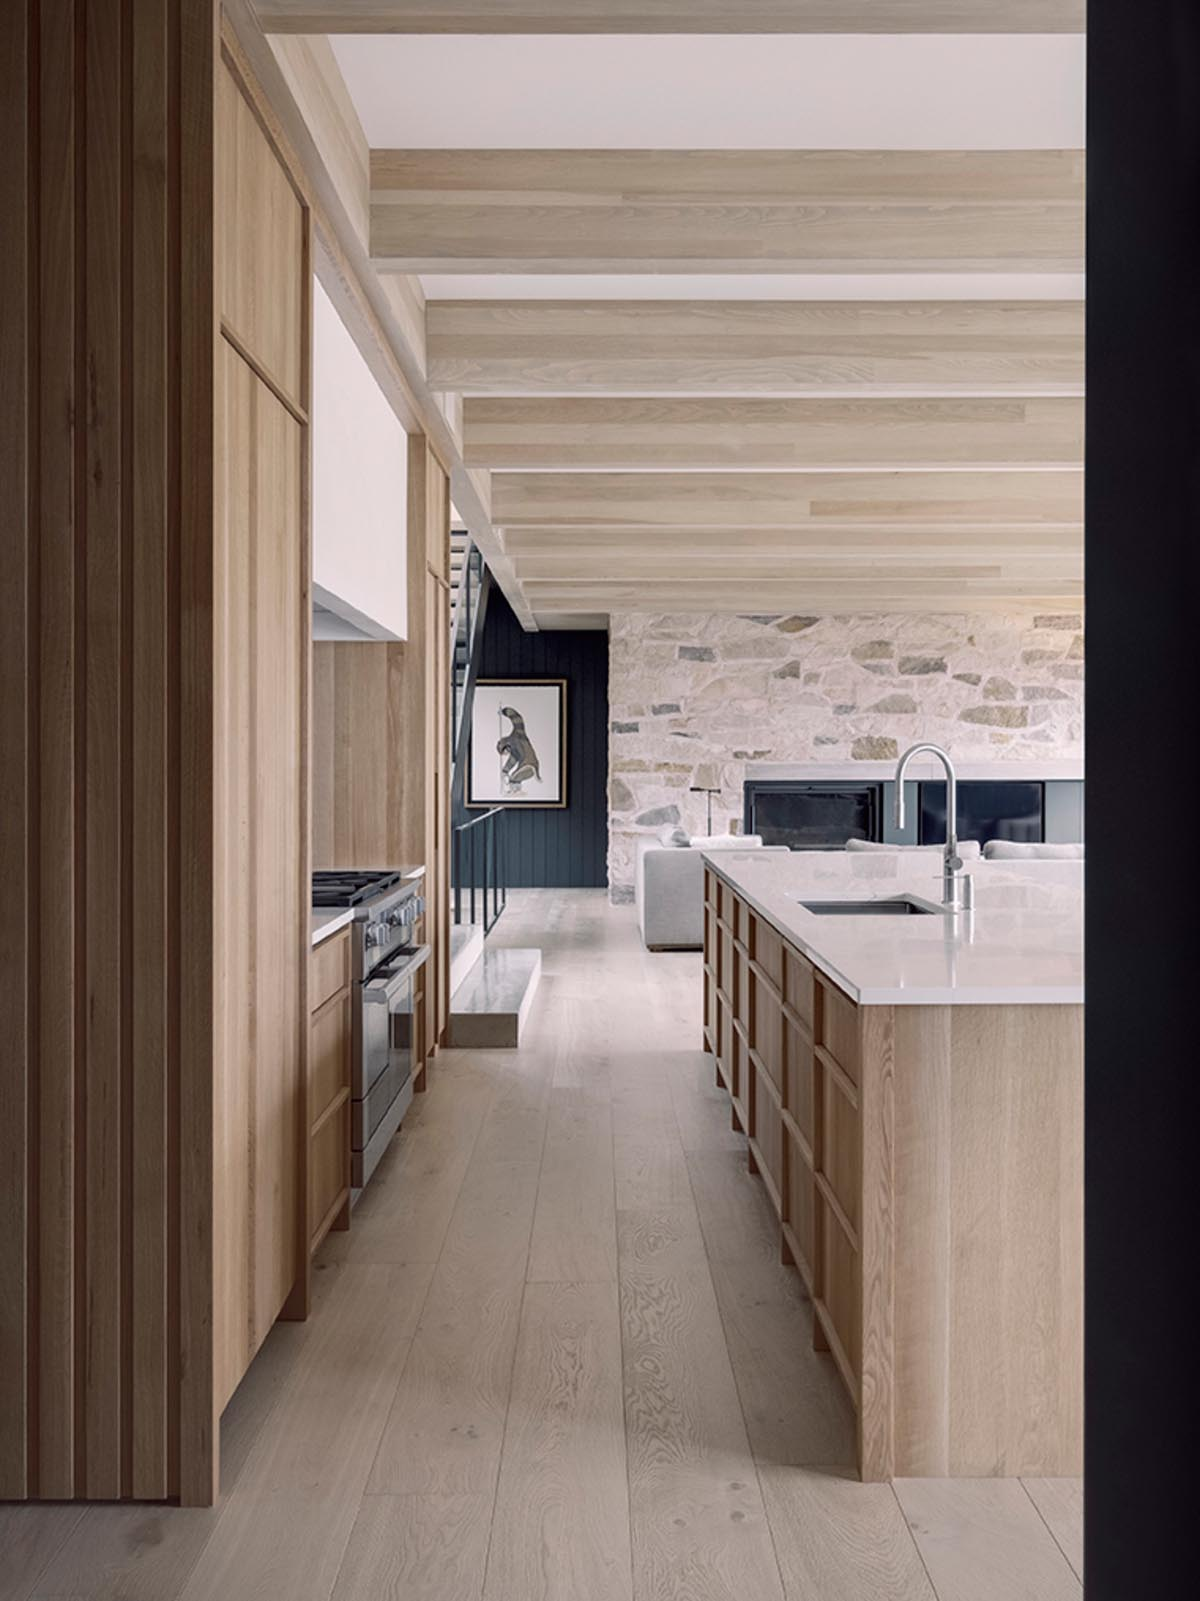 A modern kitchen with hardware-free wood cabinets and a large island that increases the available countertop space.